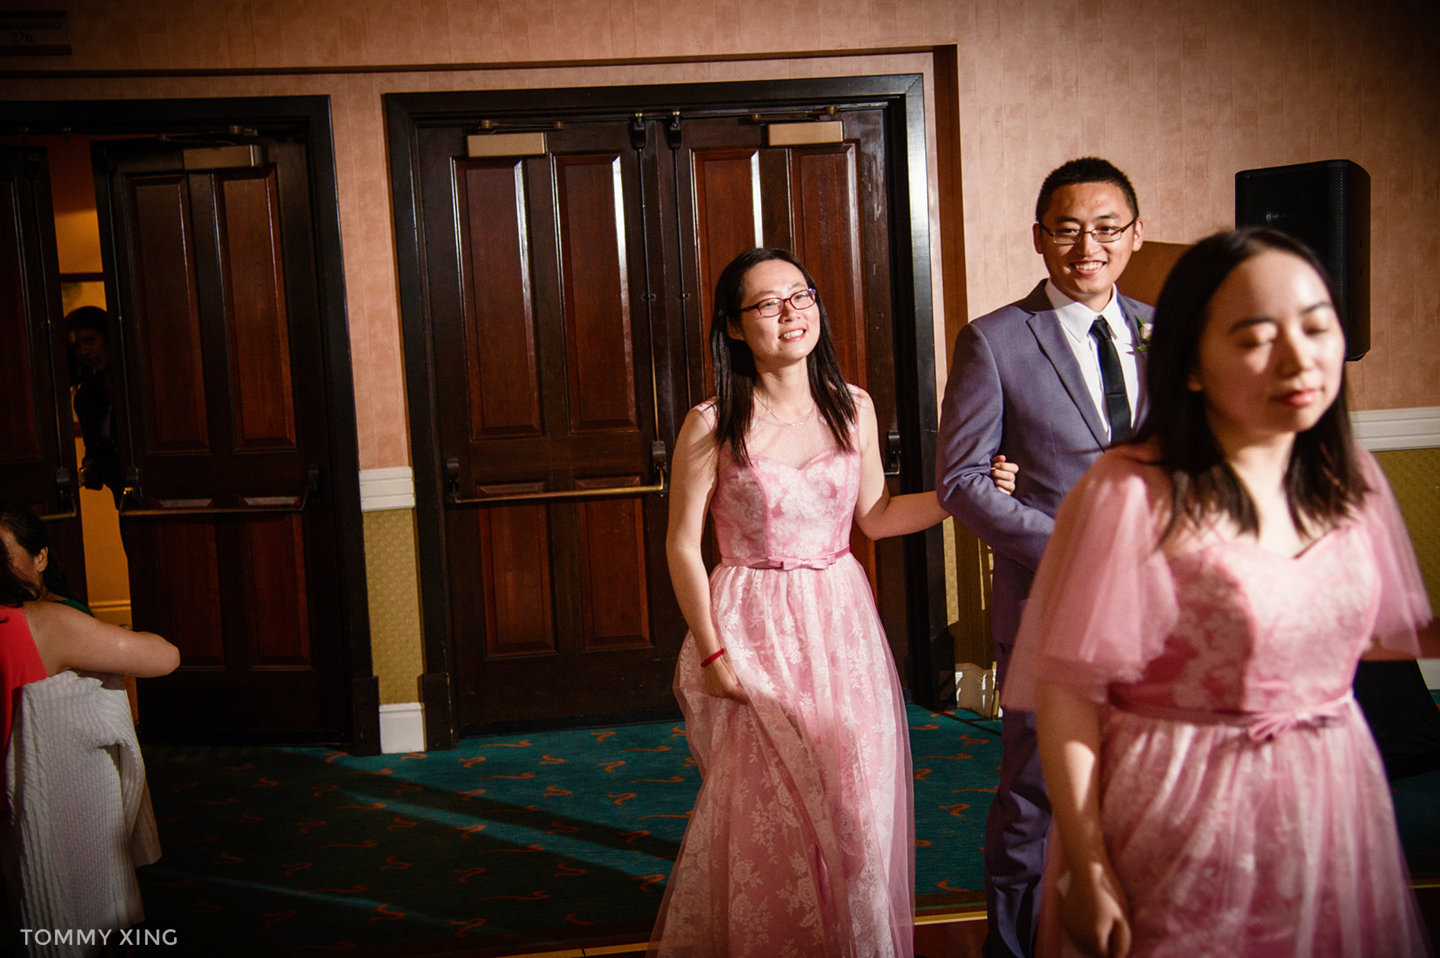 Paradise Point Resort Wedding Xiaolu & Bin San Diego 圣地亚哥婚礼摄影跟拍 Tommy Xing Photography 洛杉矶婚礼婚纱照摄影师 221.jpg